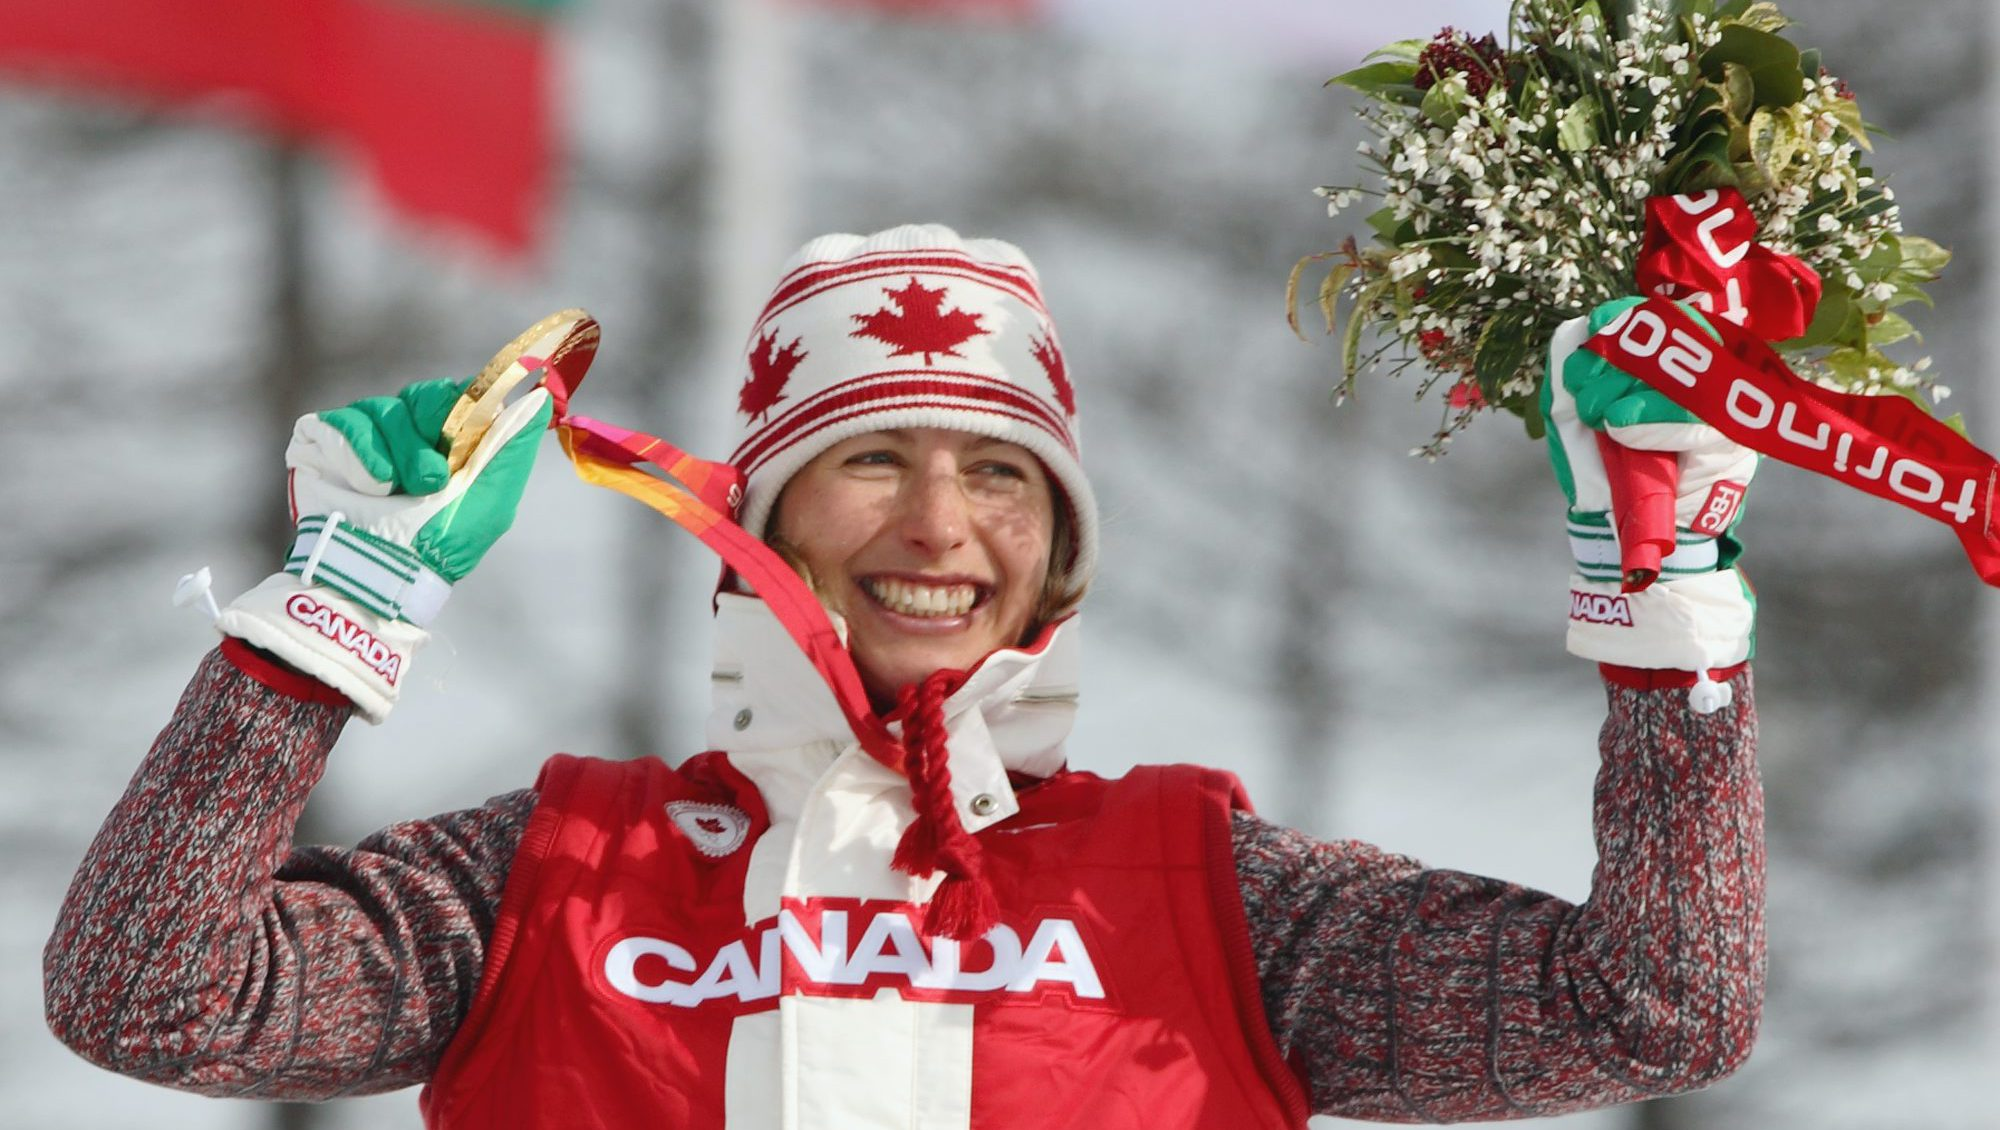 A Team Canada athlete poses with her medal